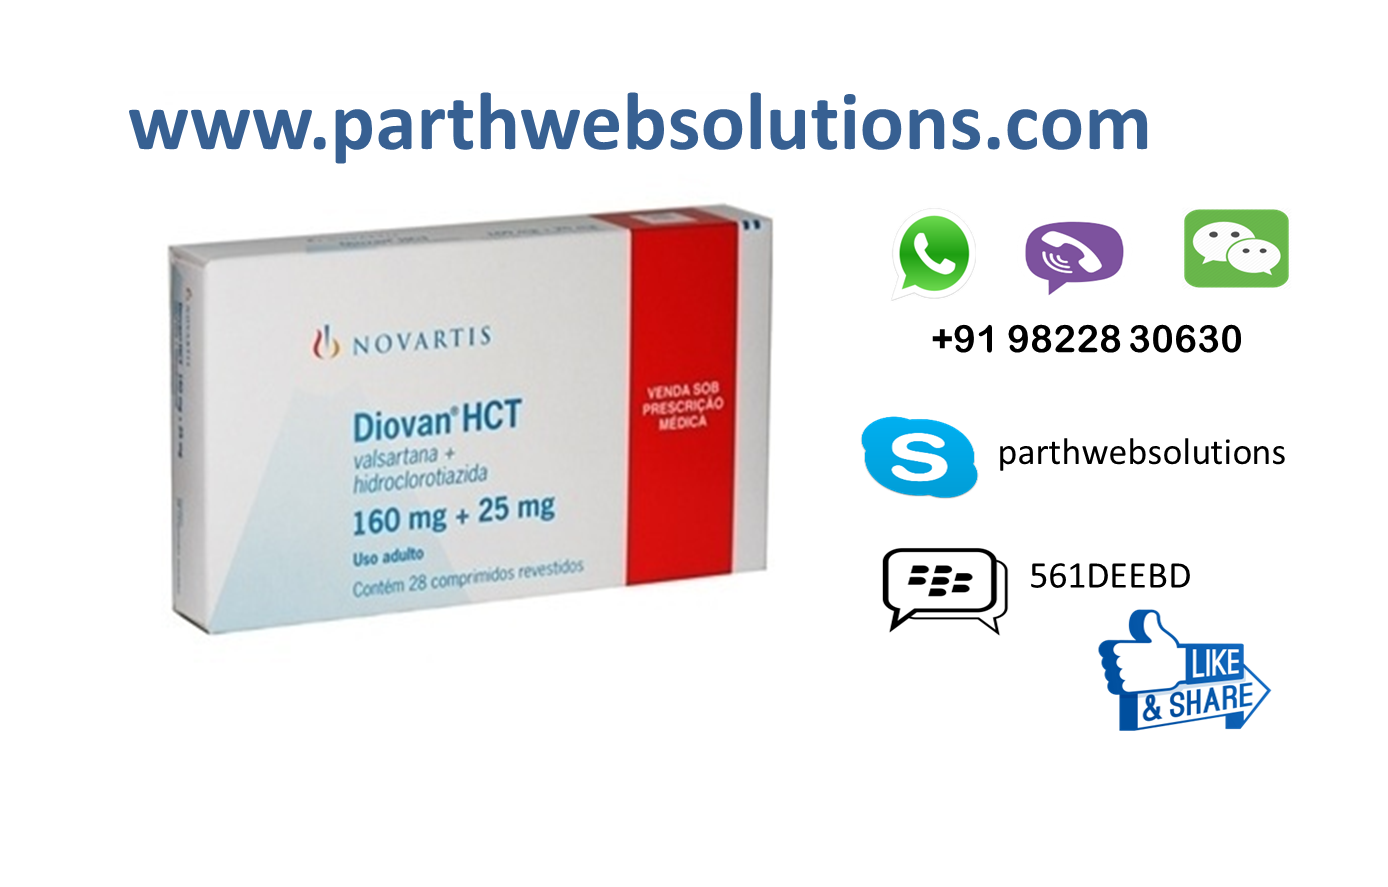 viagra and diovan hct